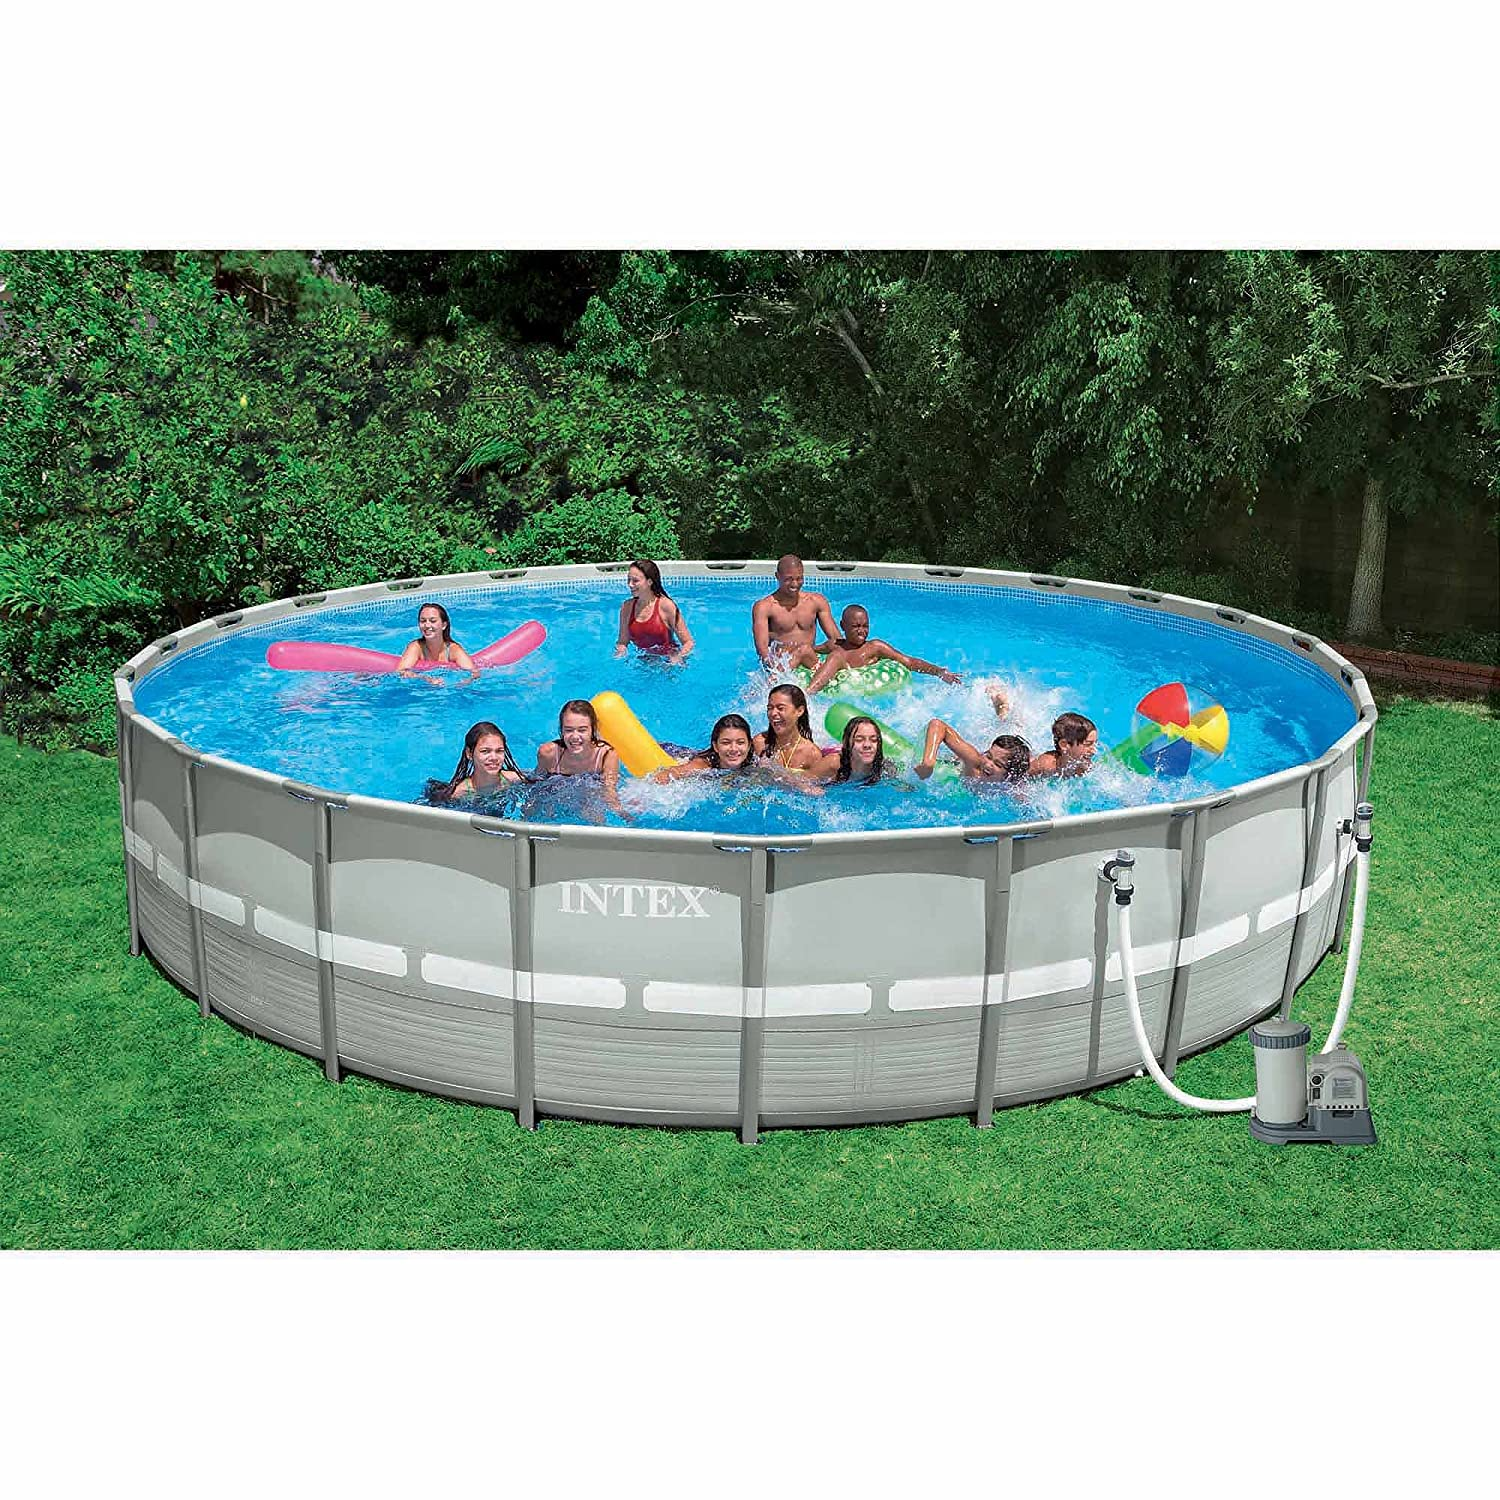 amazoncom intex 26 feet x 52 inches above ground ultra frame pool set with gfci 54969wa garden outdoor - Intex Pools